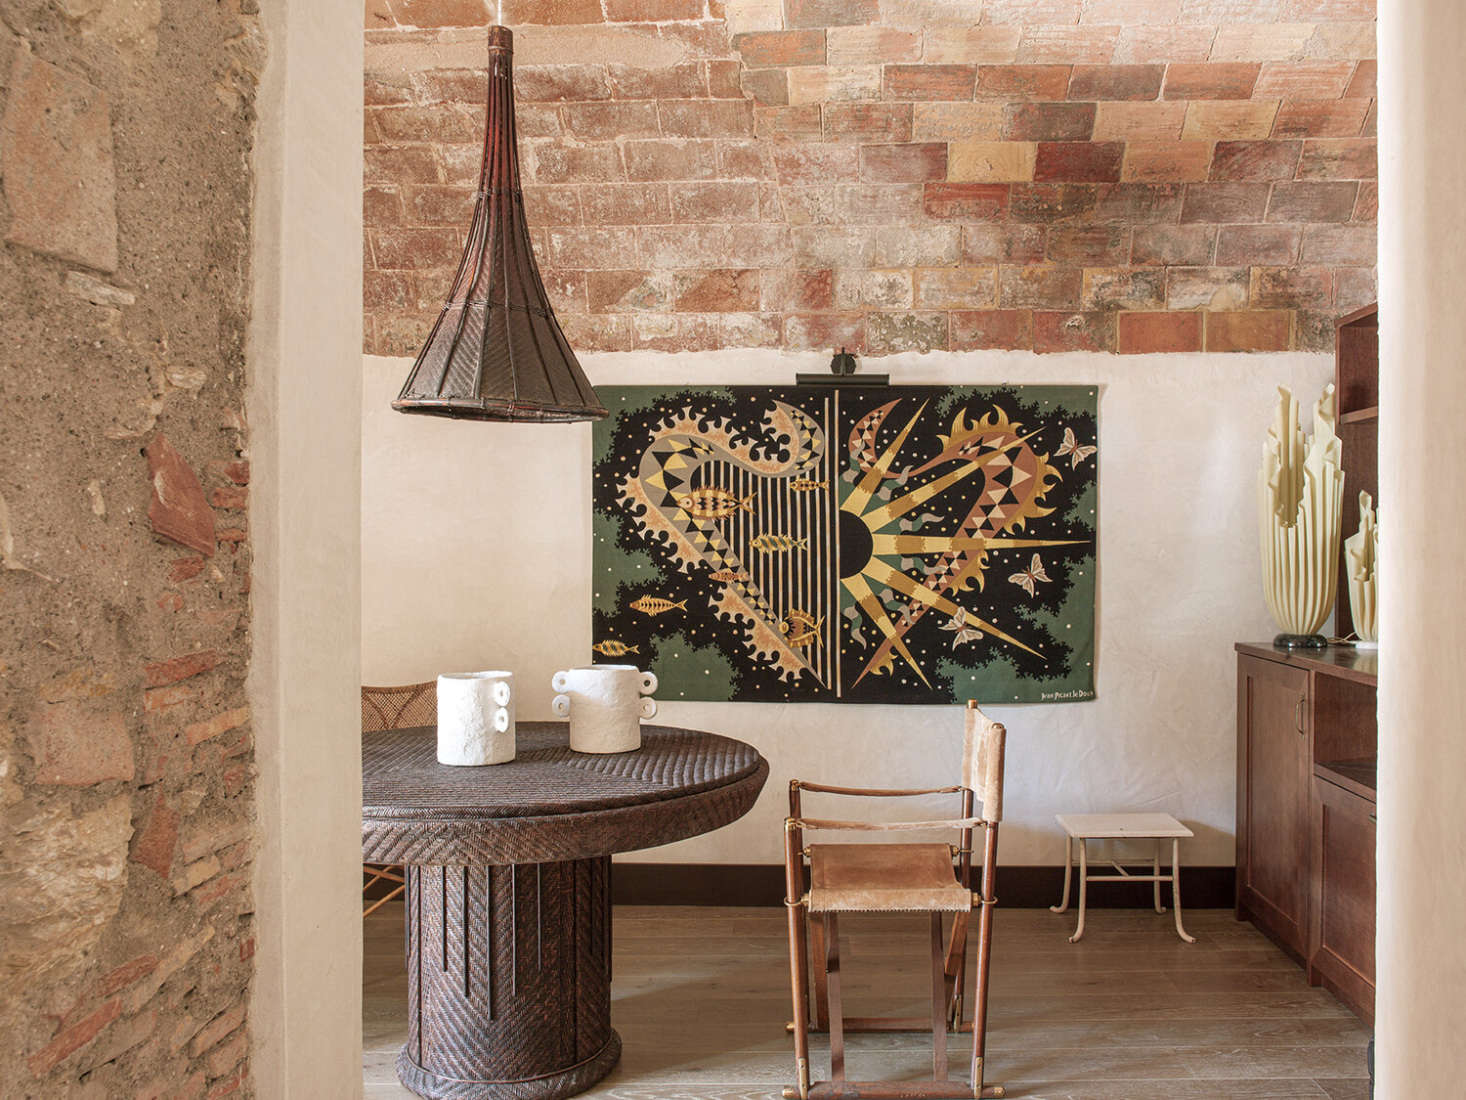 In the bar/winter breakfast area, the designers paired a rattan table found in a Barcelona antiques shop with a light made from a Vietnamese rice picker. The vintage tapestry is by Jean Picart Le Doux.